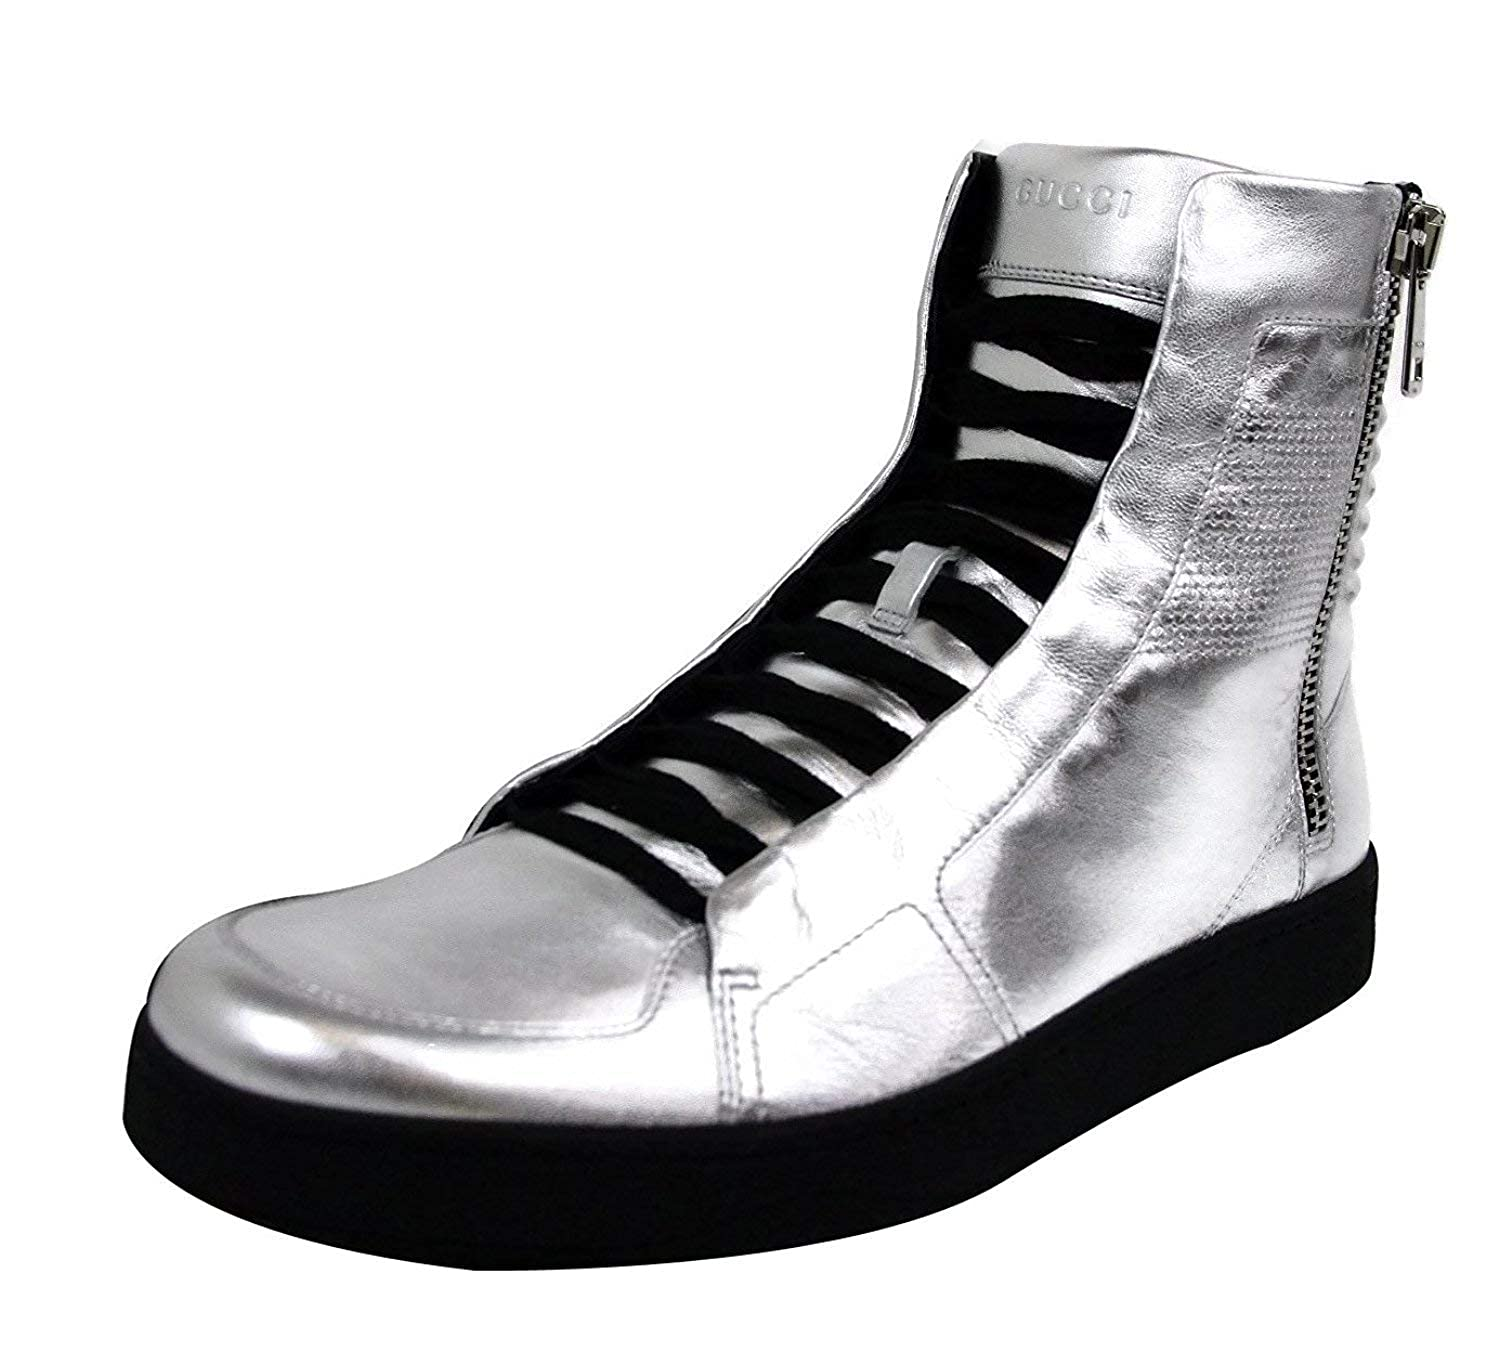 e3c71a893 Amazon.com: Gucci Men's Silver Leather Limited Edition High-top Sneakers  376191 8163: Shoes